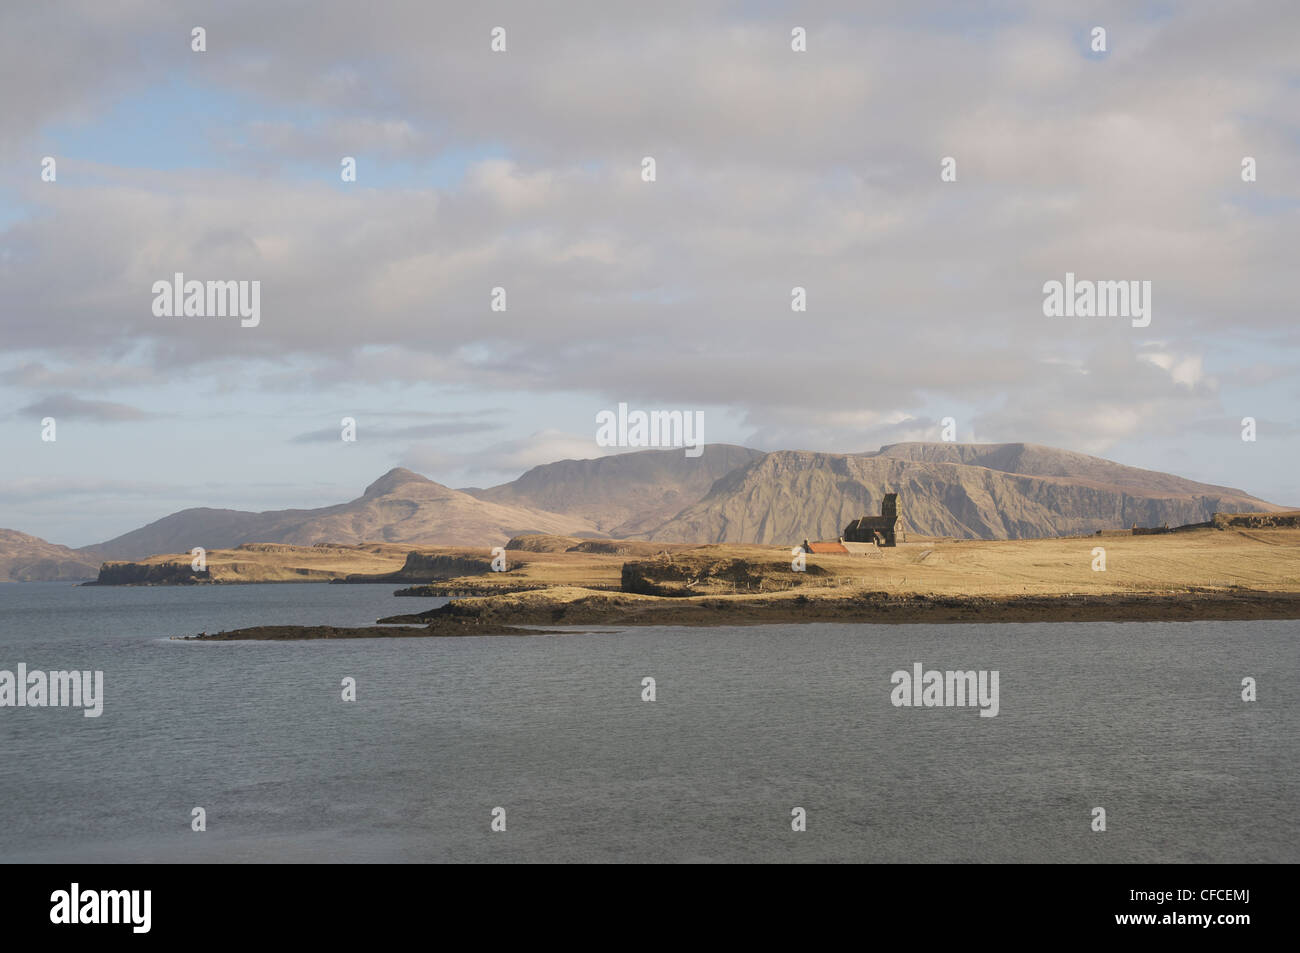 A view from Canna looking across Sanday with Rhum in the background - Stock Image